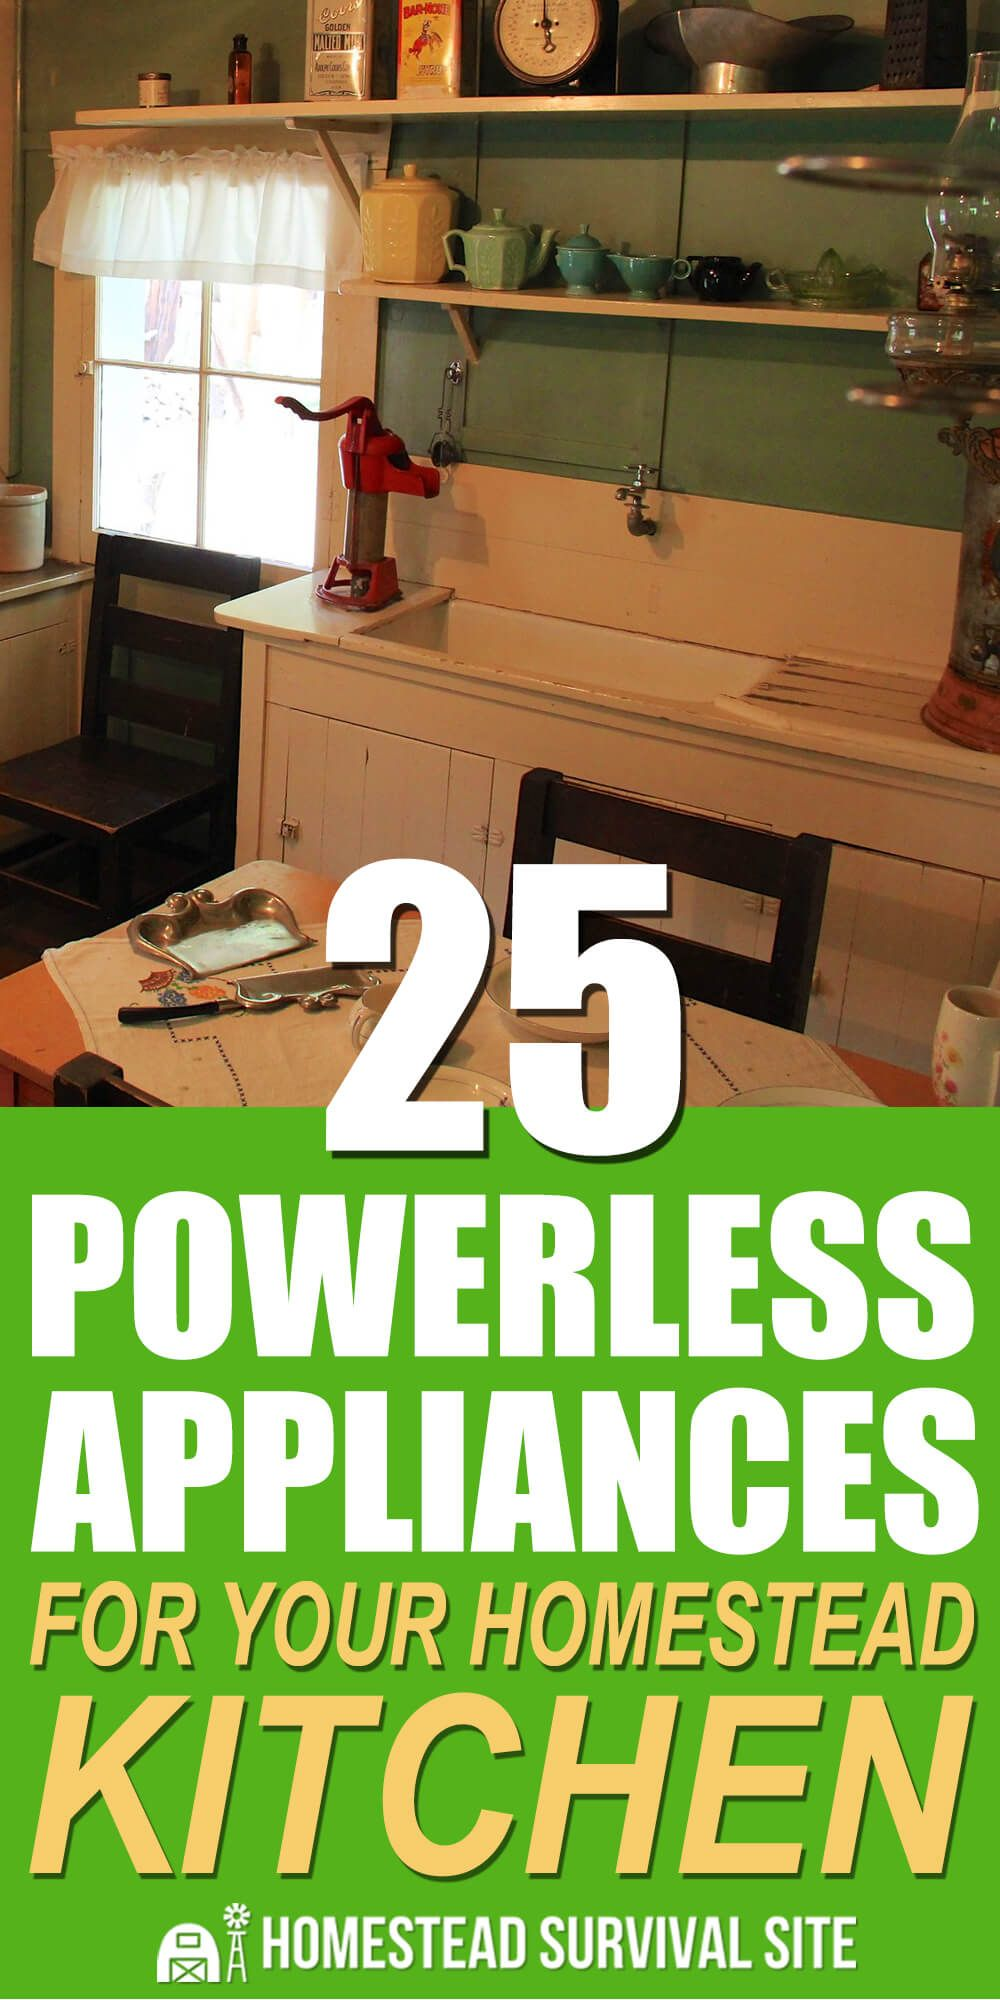 25 Powerless Appliances for Your Homestead Kitchen